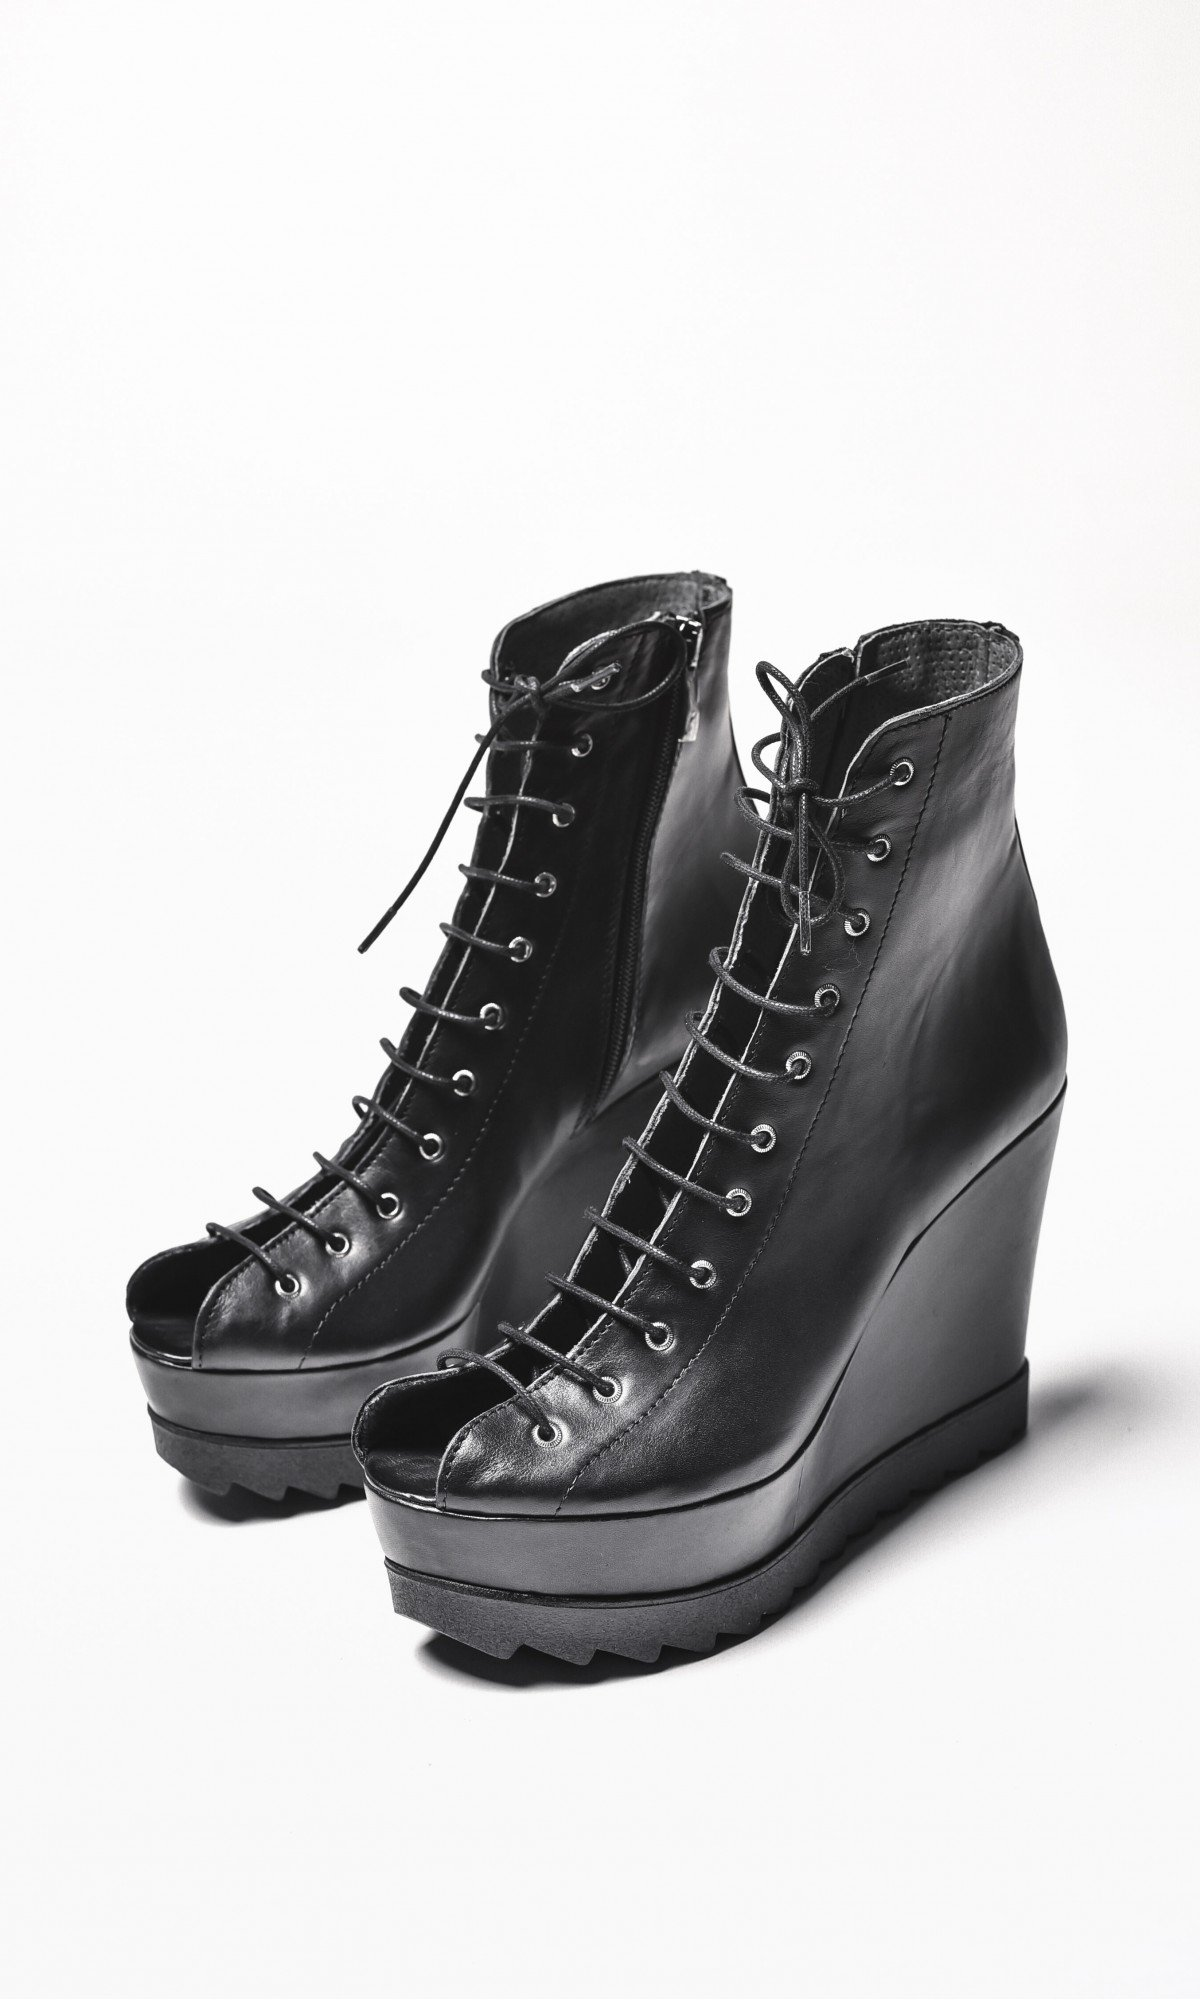 Black Genuine Leather Sexy Laced Wedges Sandals A21577